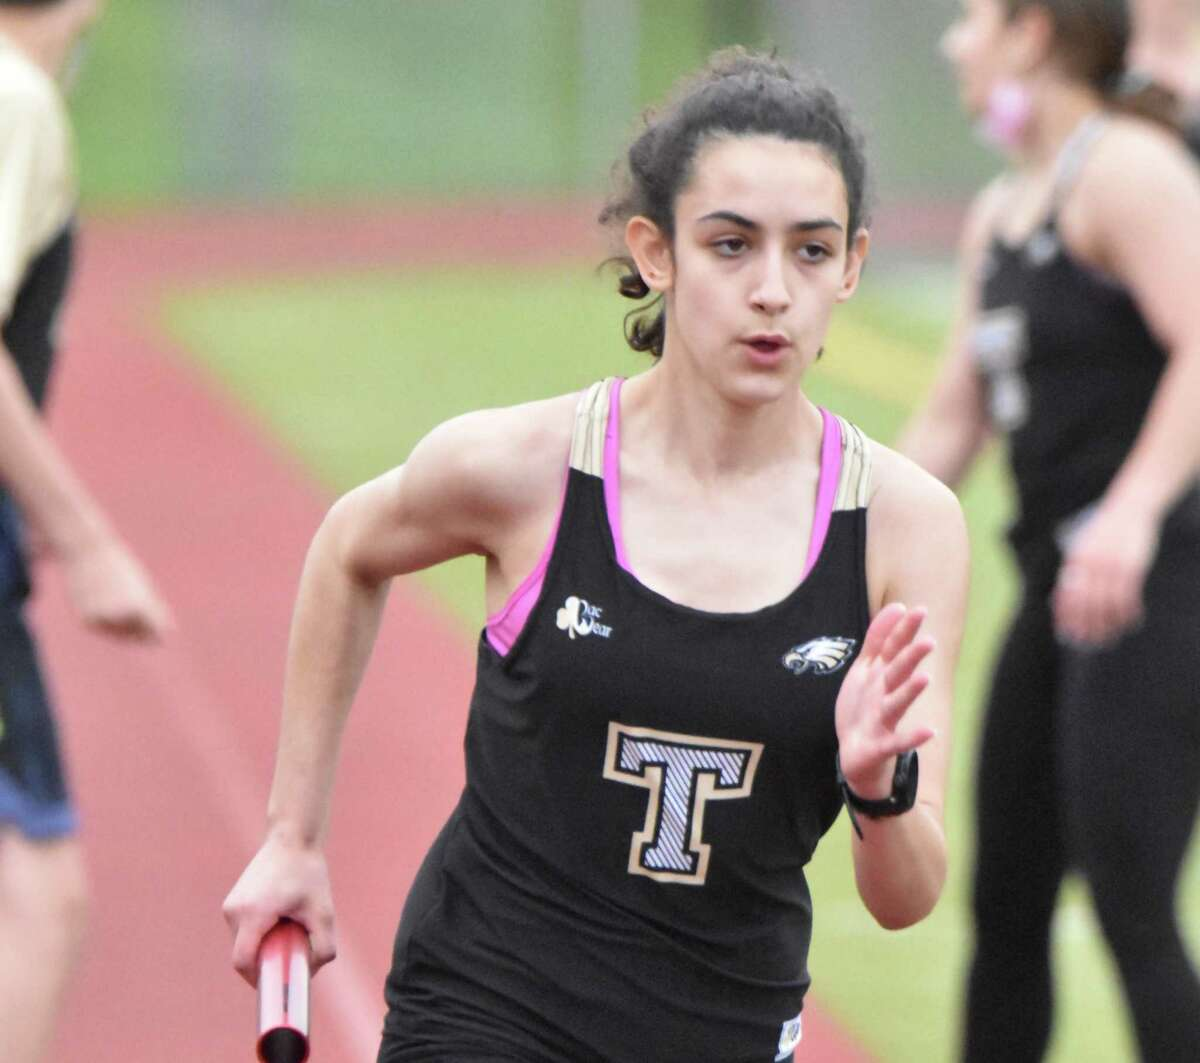 Evelyn Marchand won the 400 and 3200 meters and was a member of the winning 4x400 meter relay team in Trumbull's meet with Stamford.